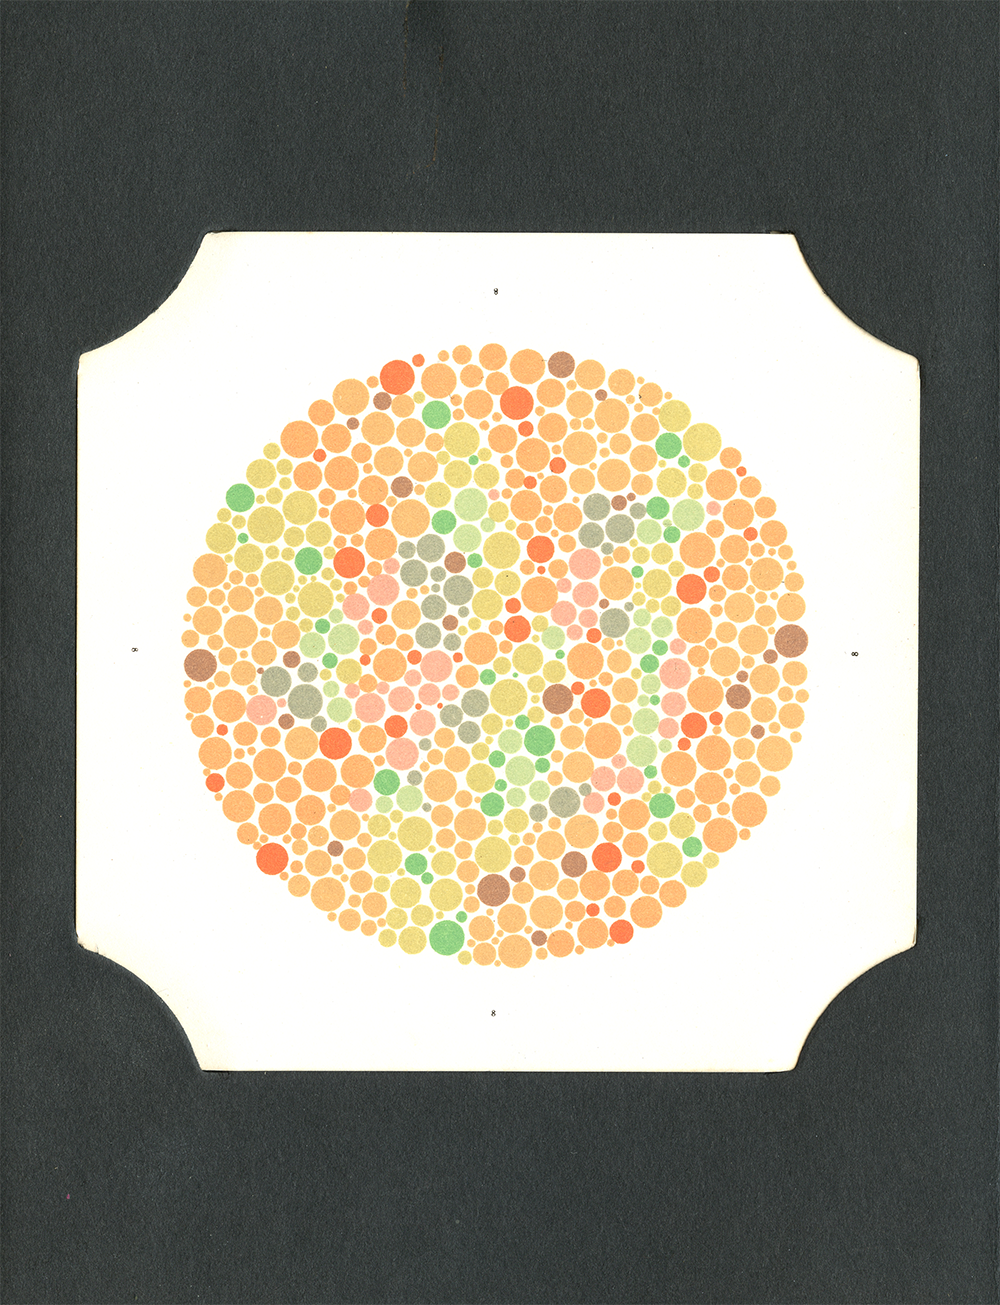 Book for color blindness - Ault Ishihara Plate Click For Larger Image